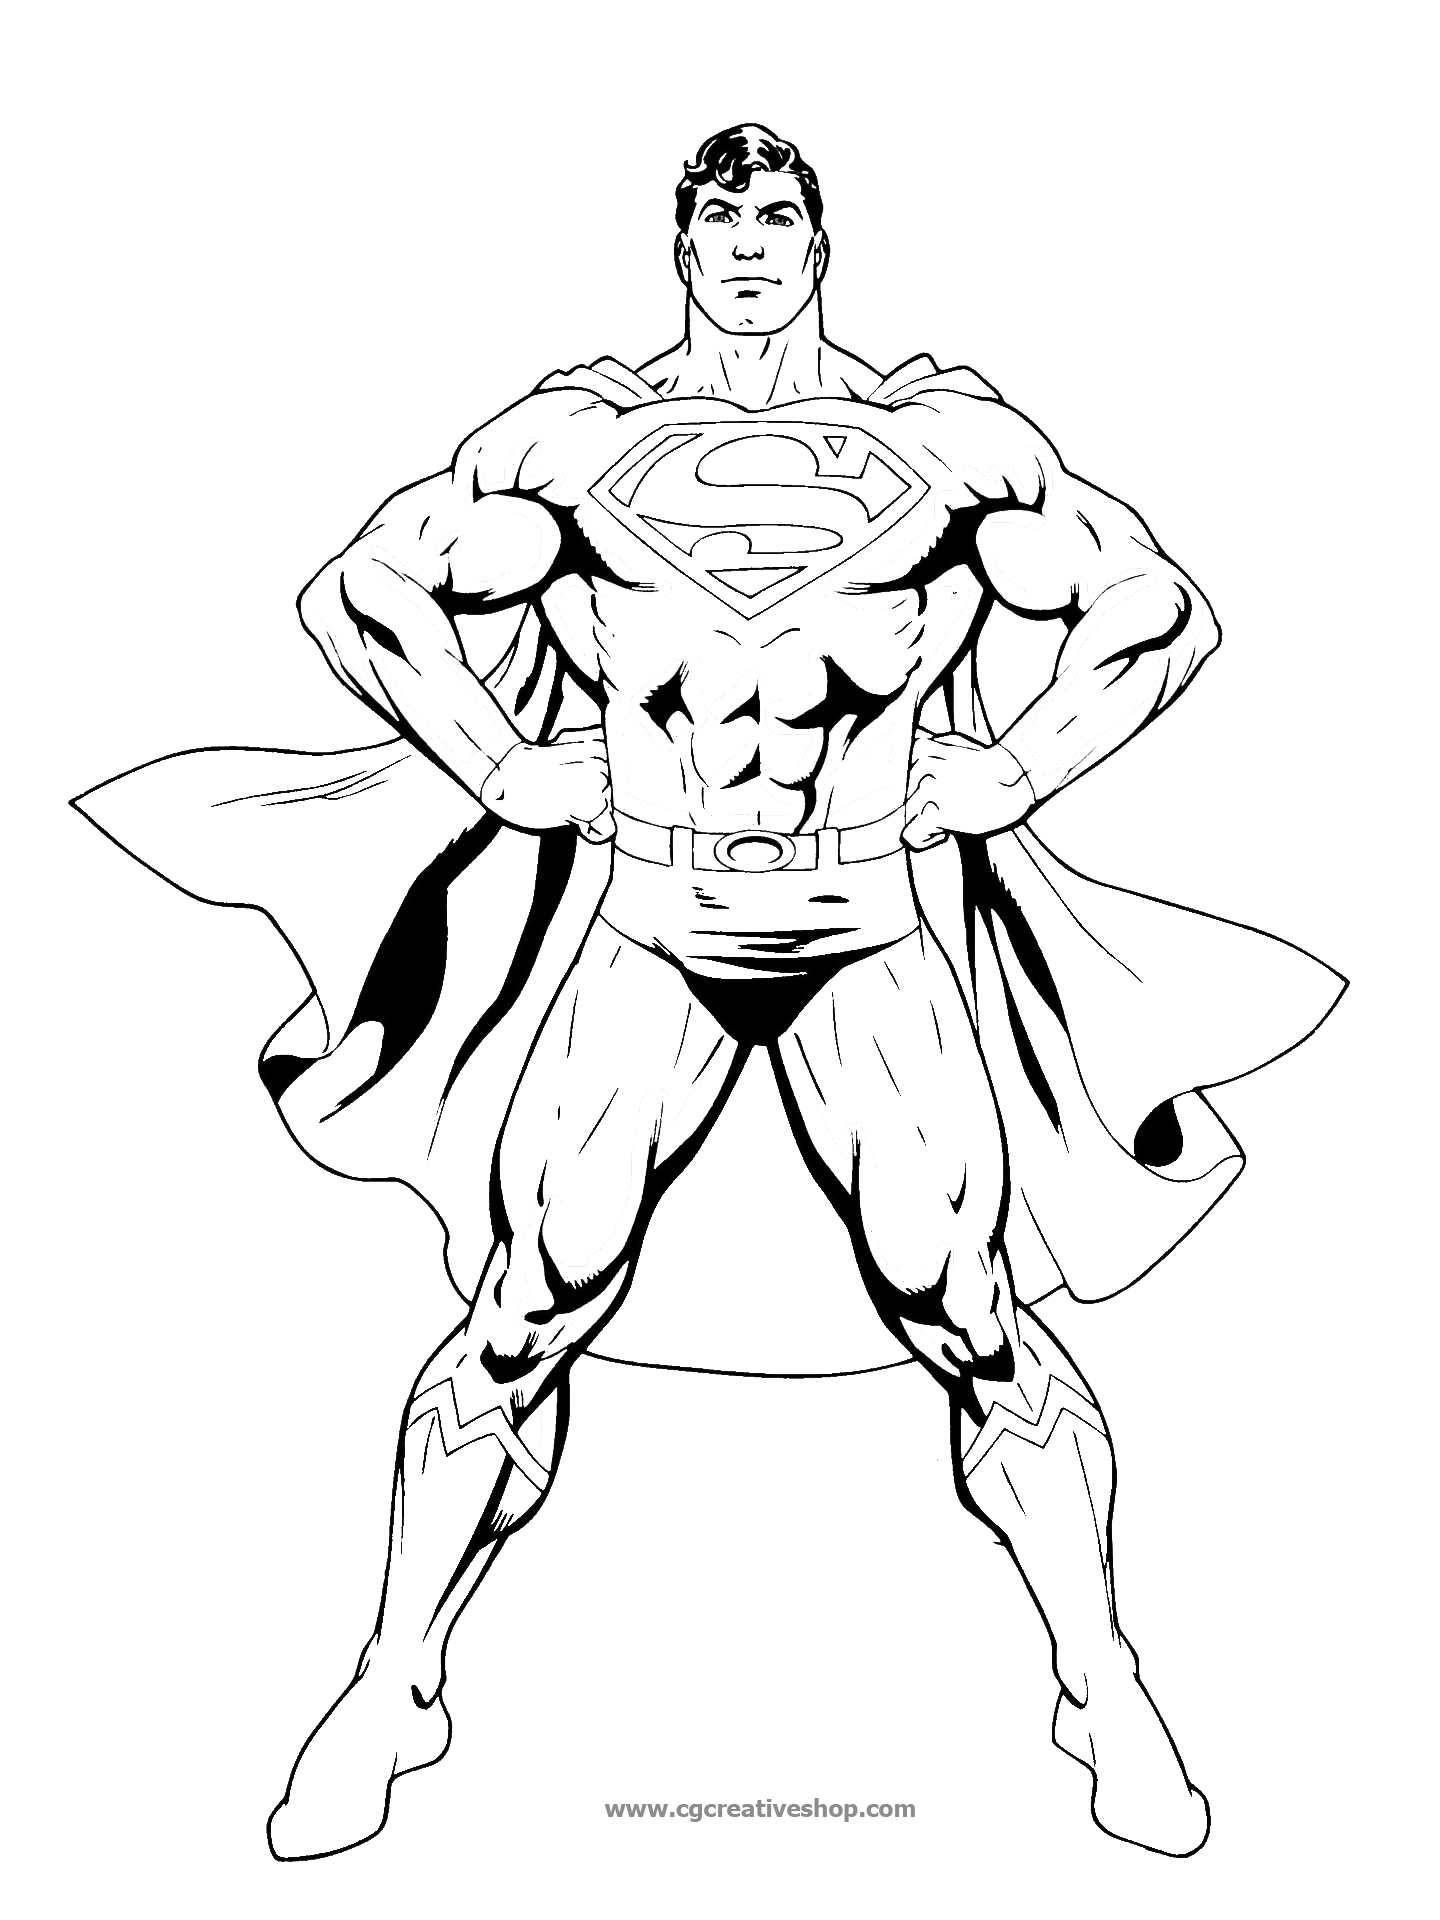 dc comics coloring pages - 3593 superman disegno da colorare